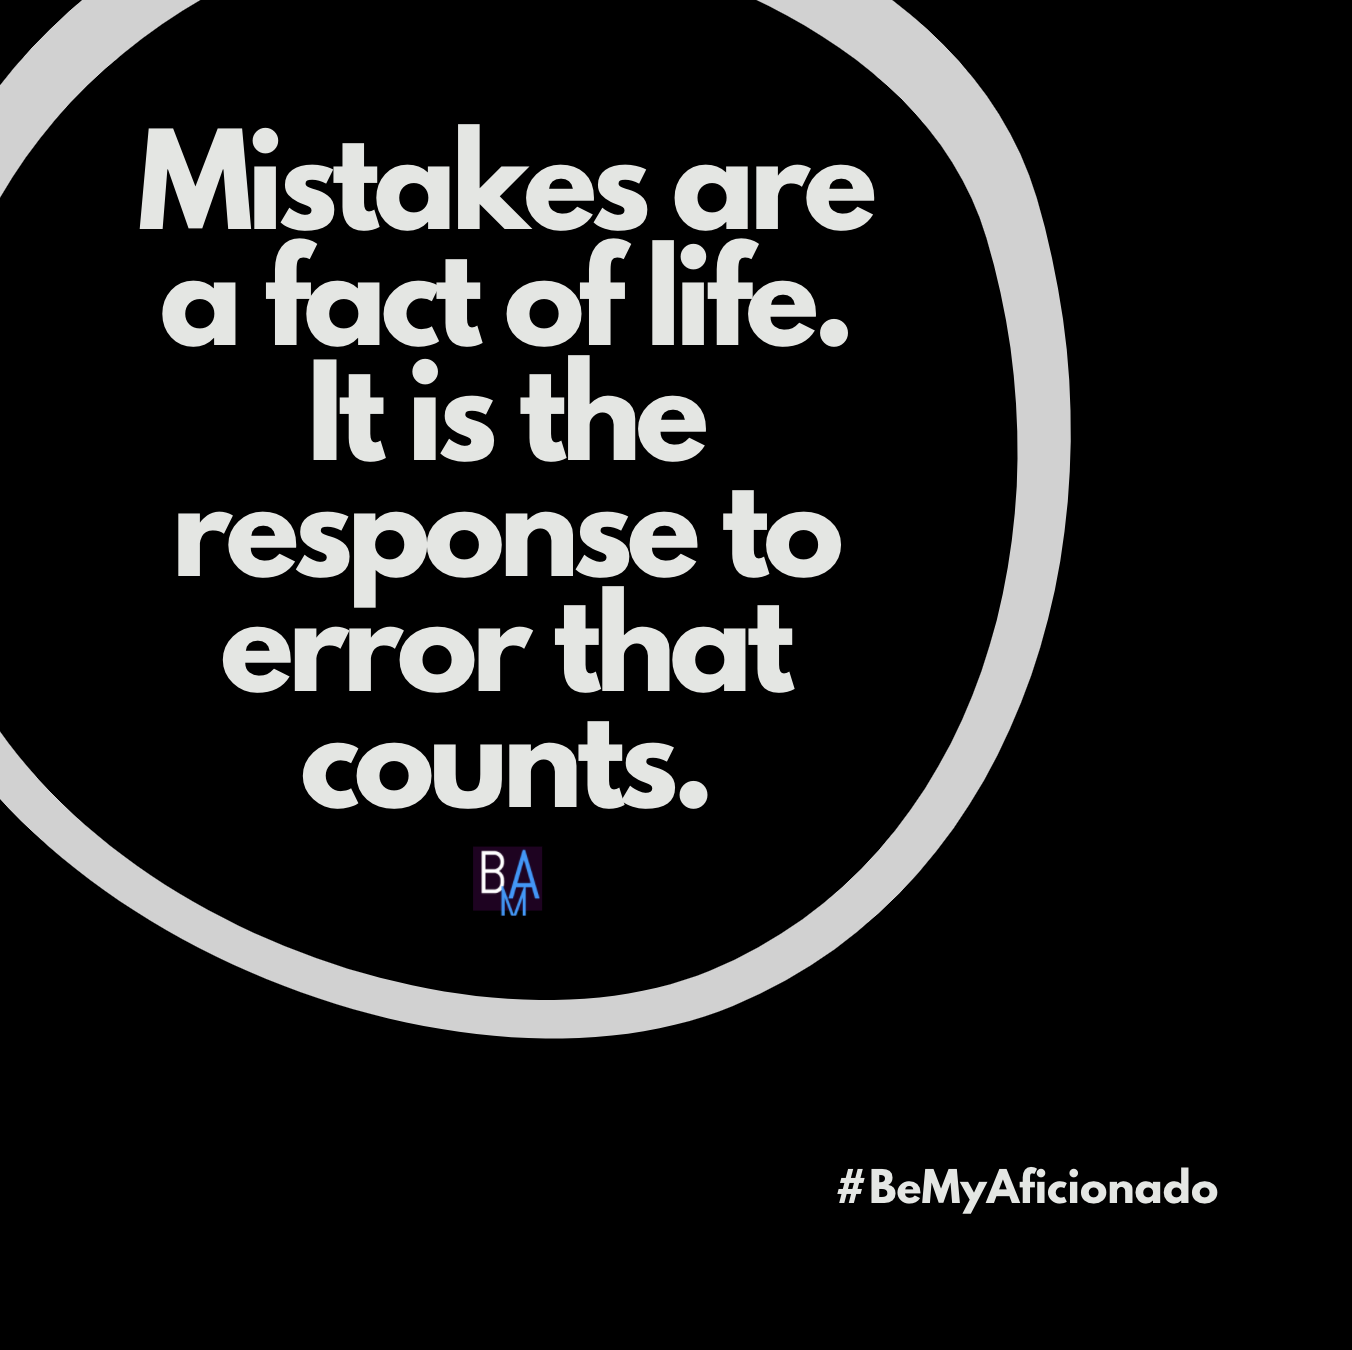 Mistakes are a fact of life. It is the response to error that counts.